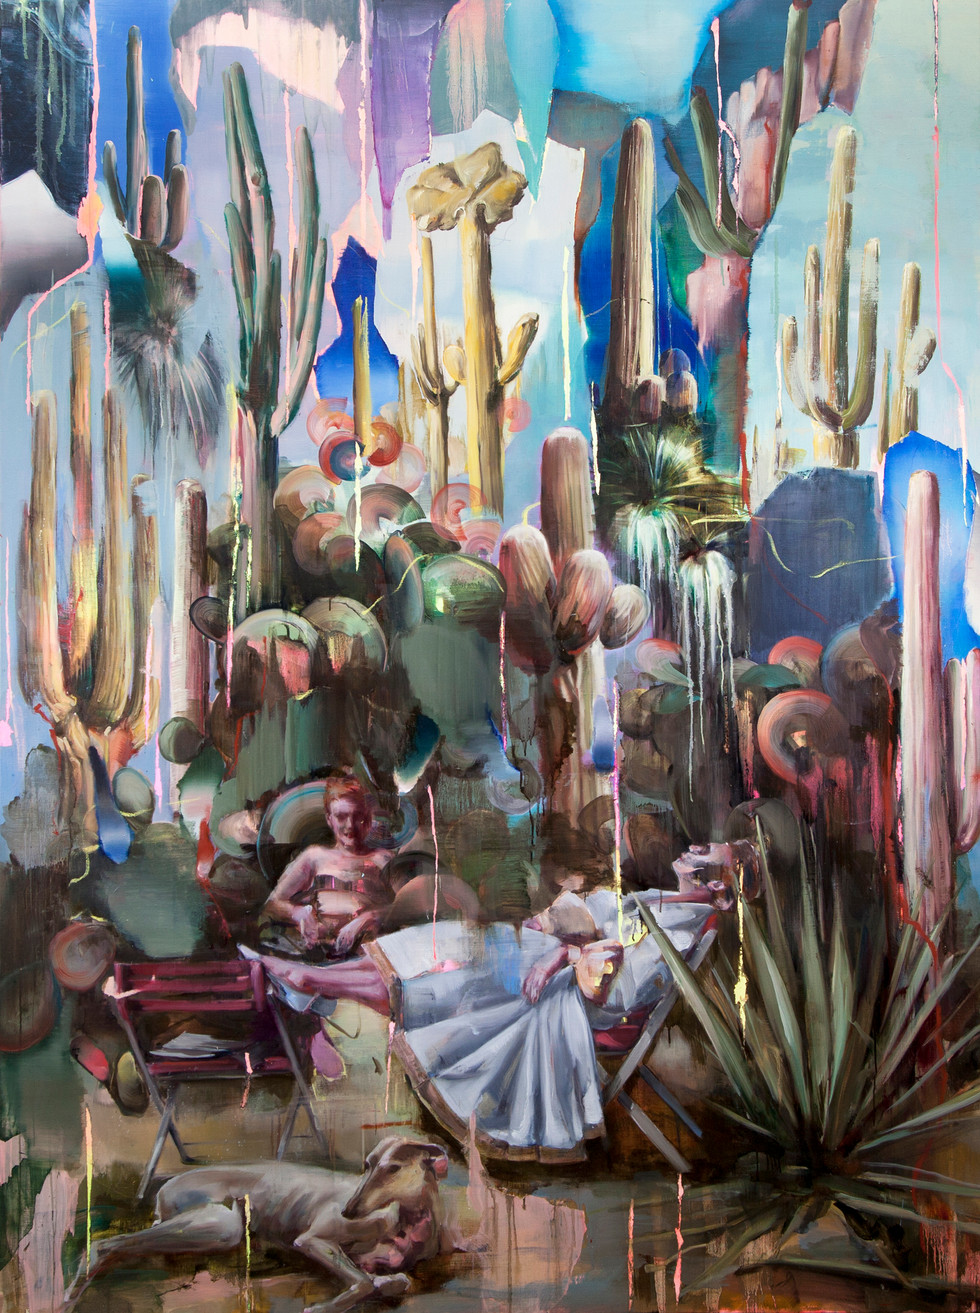 Hoax (cactus), 230 x 160 cm, oil on linen, 2019